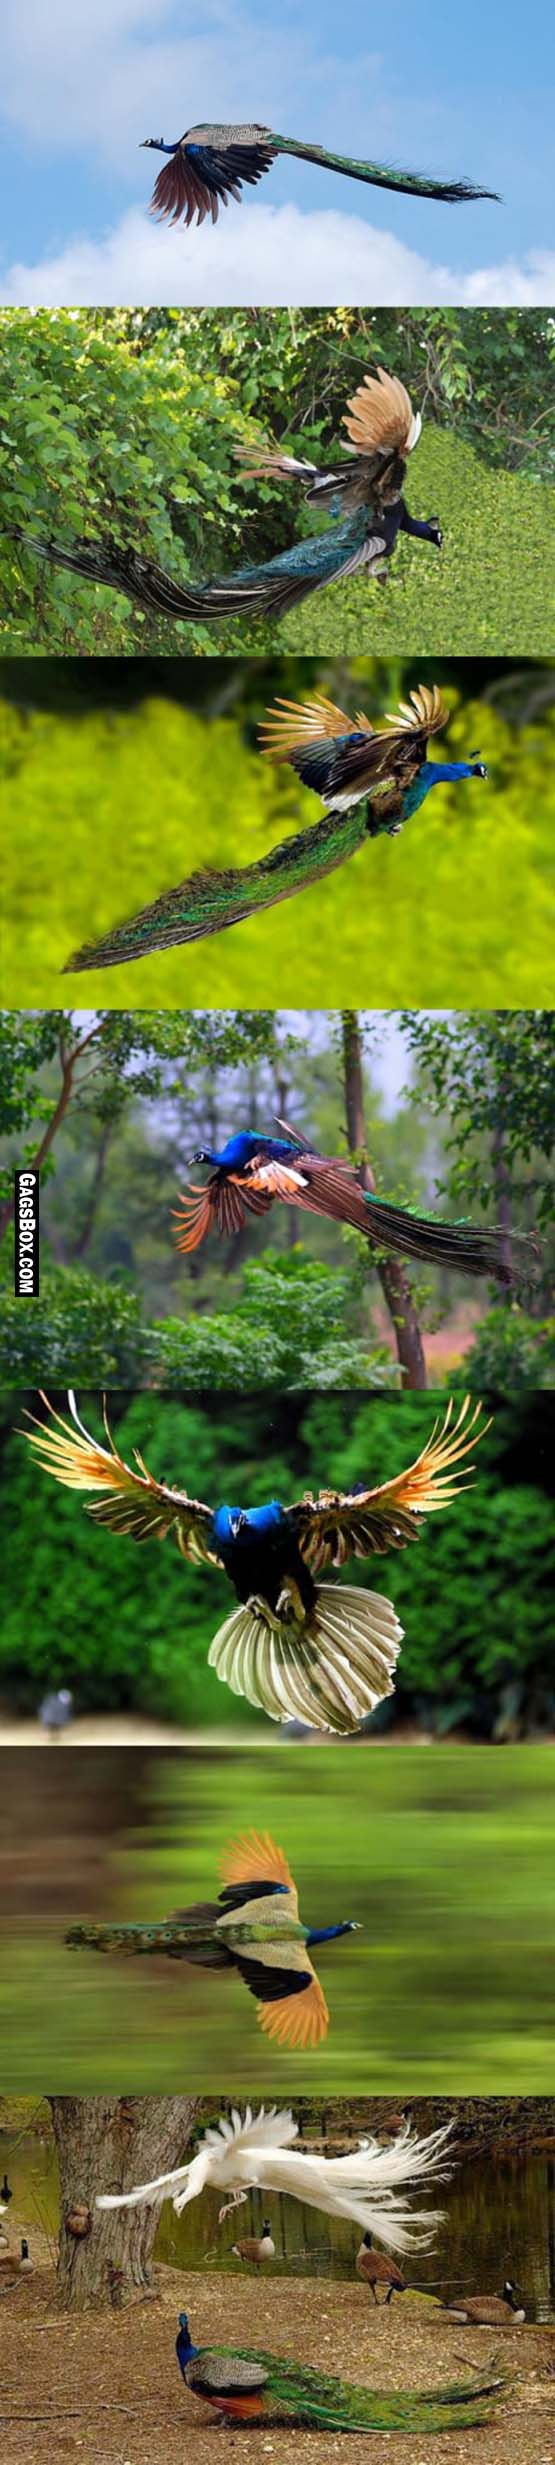 Flying Peacocks Totally Look Like Mythical Creatures LOL Funny - Flying peacocks look like mythical creatures